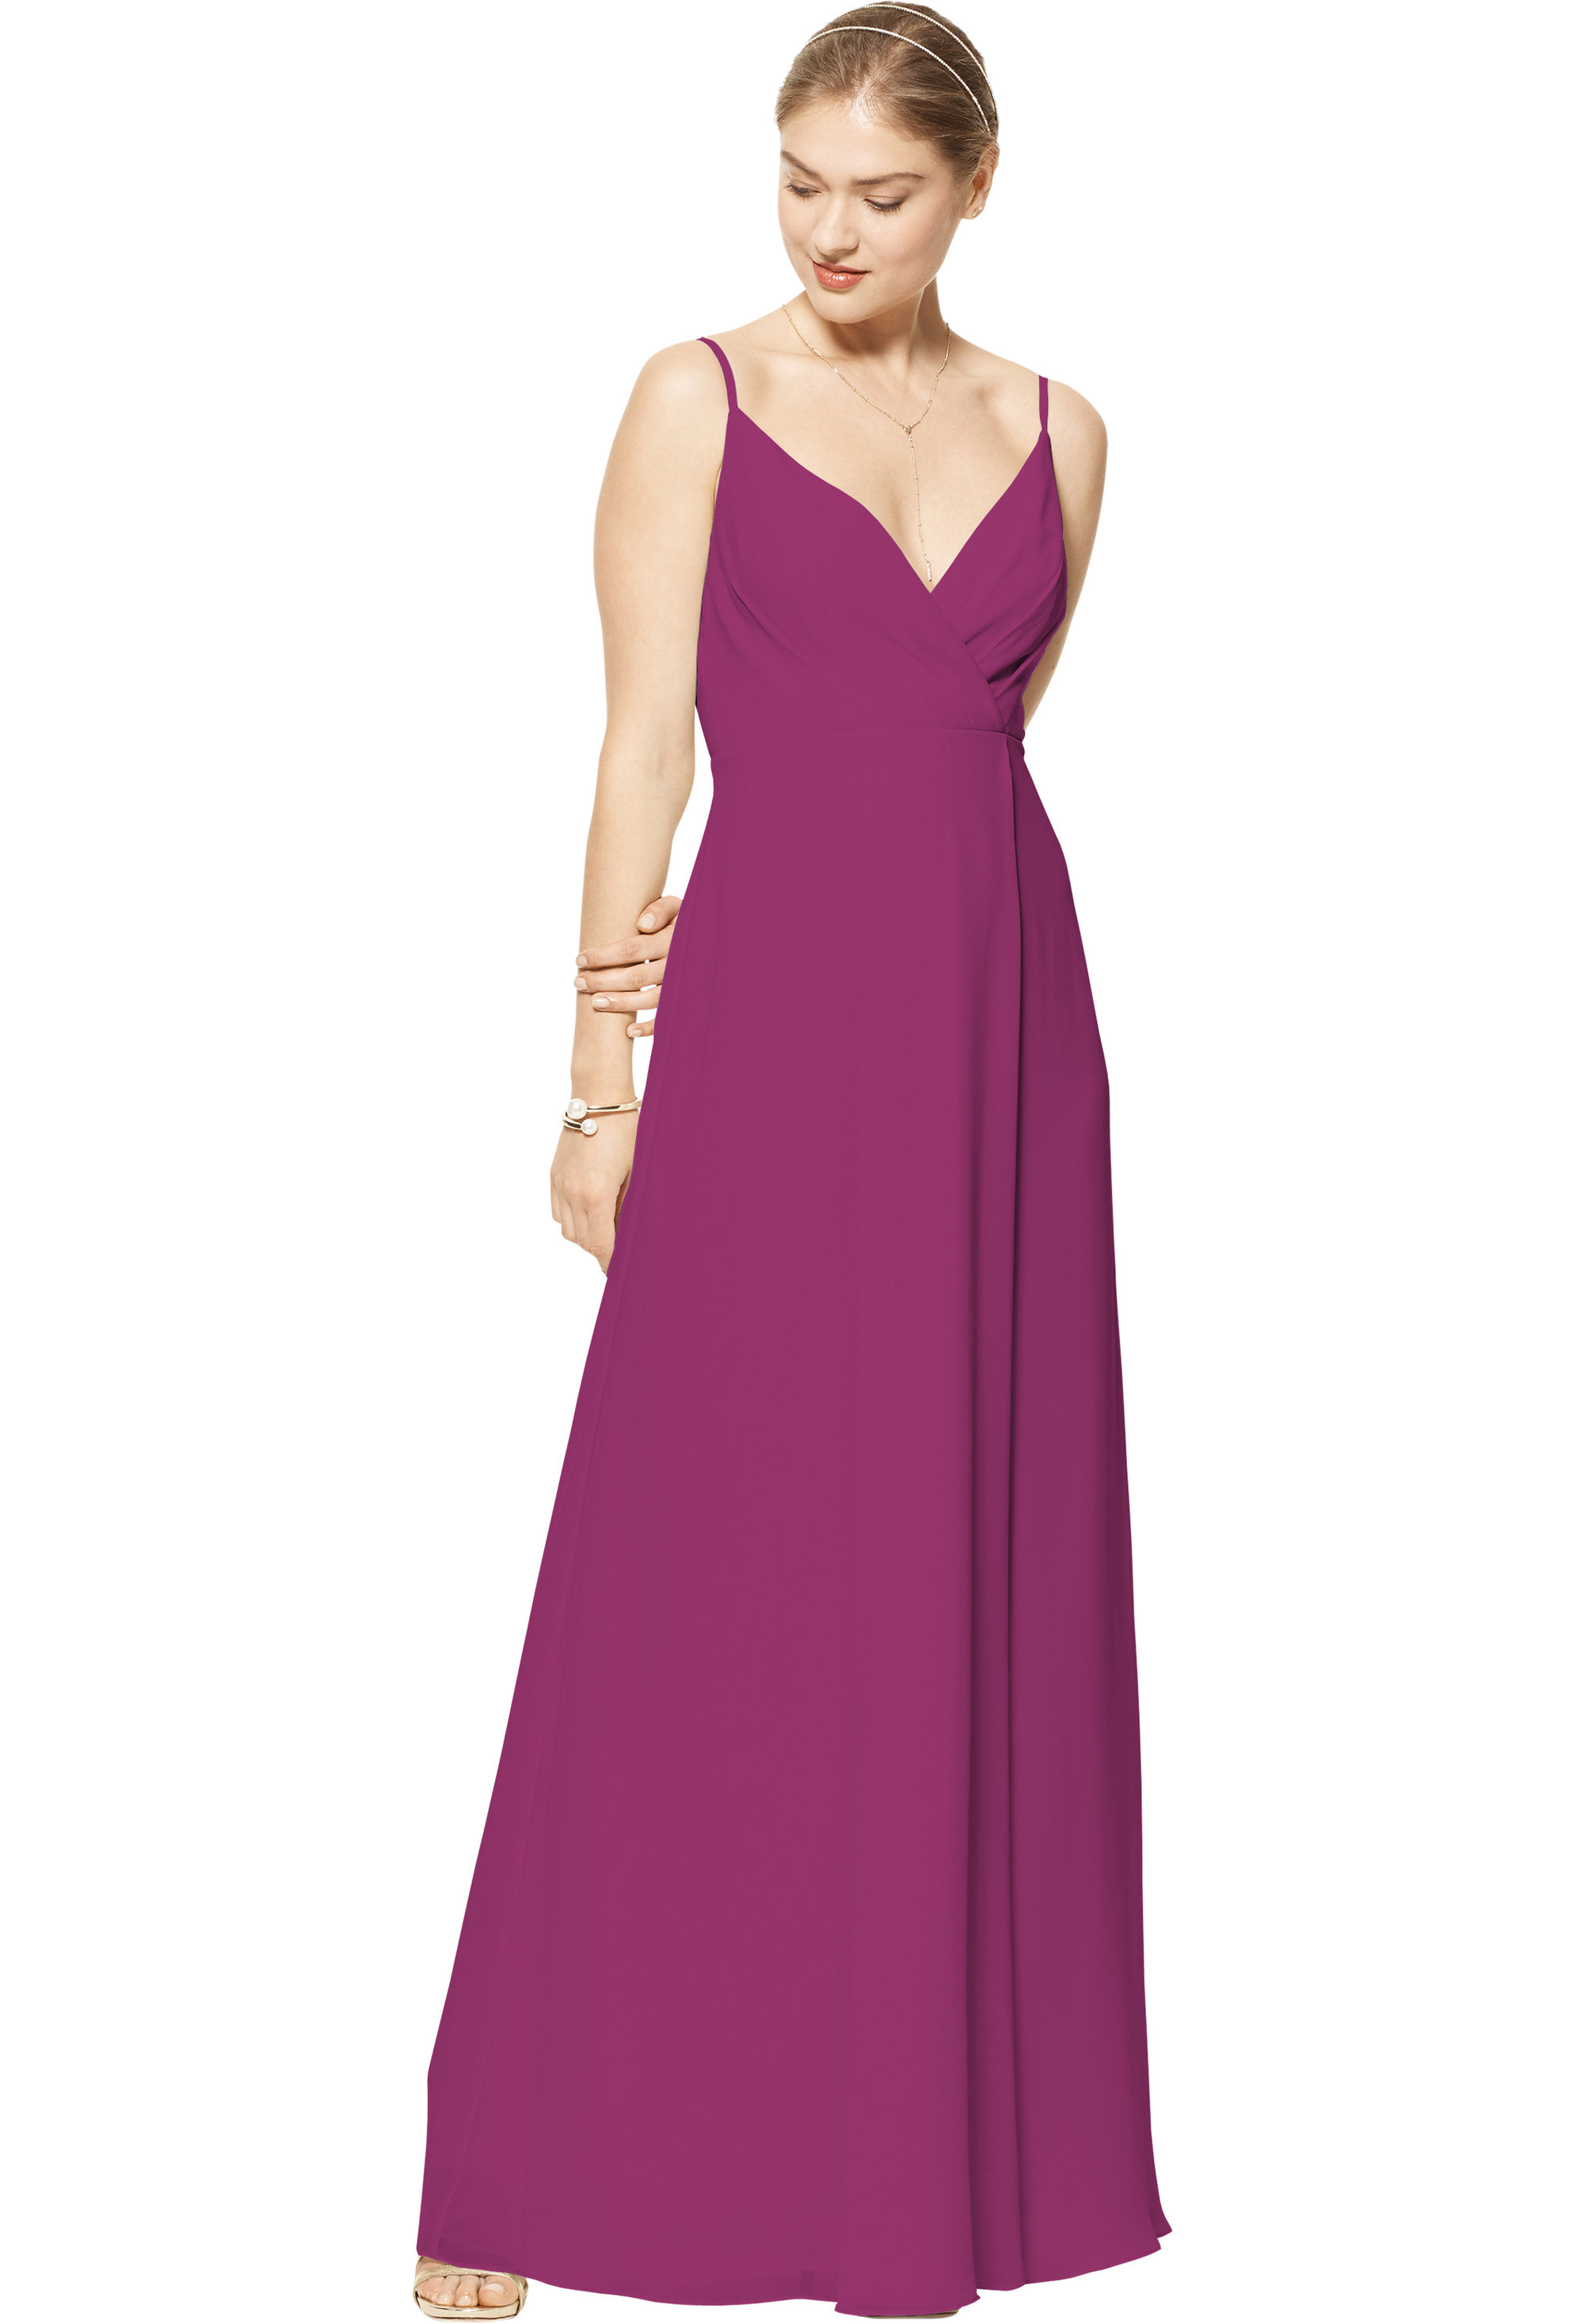 Bill Levkoff SANGRIA Chiffon V-neck A-line gown, $170.00 Front